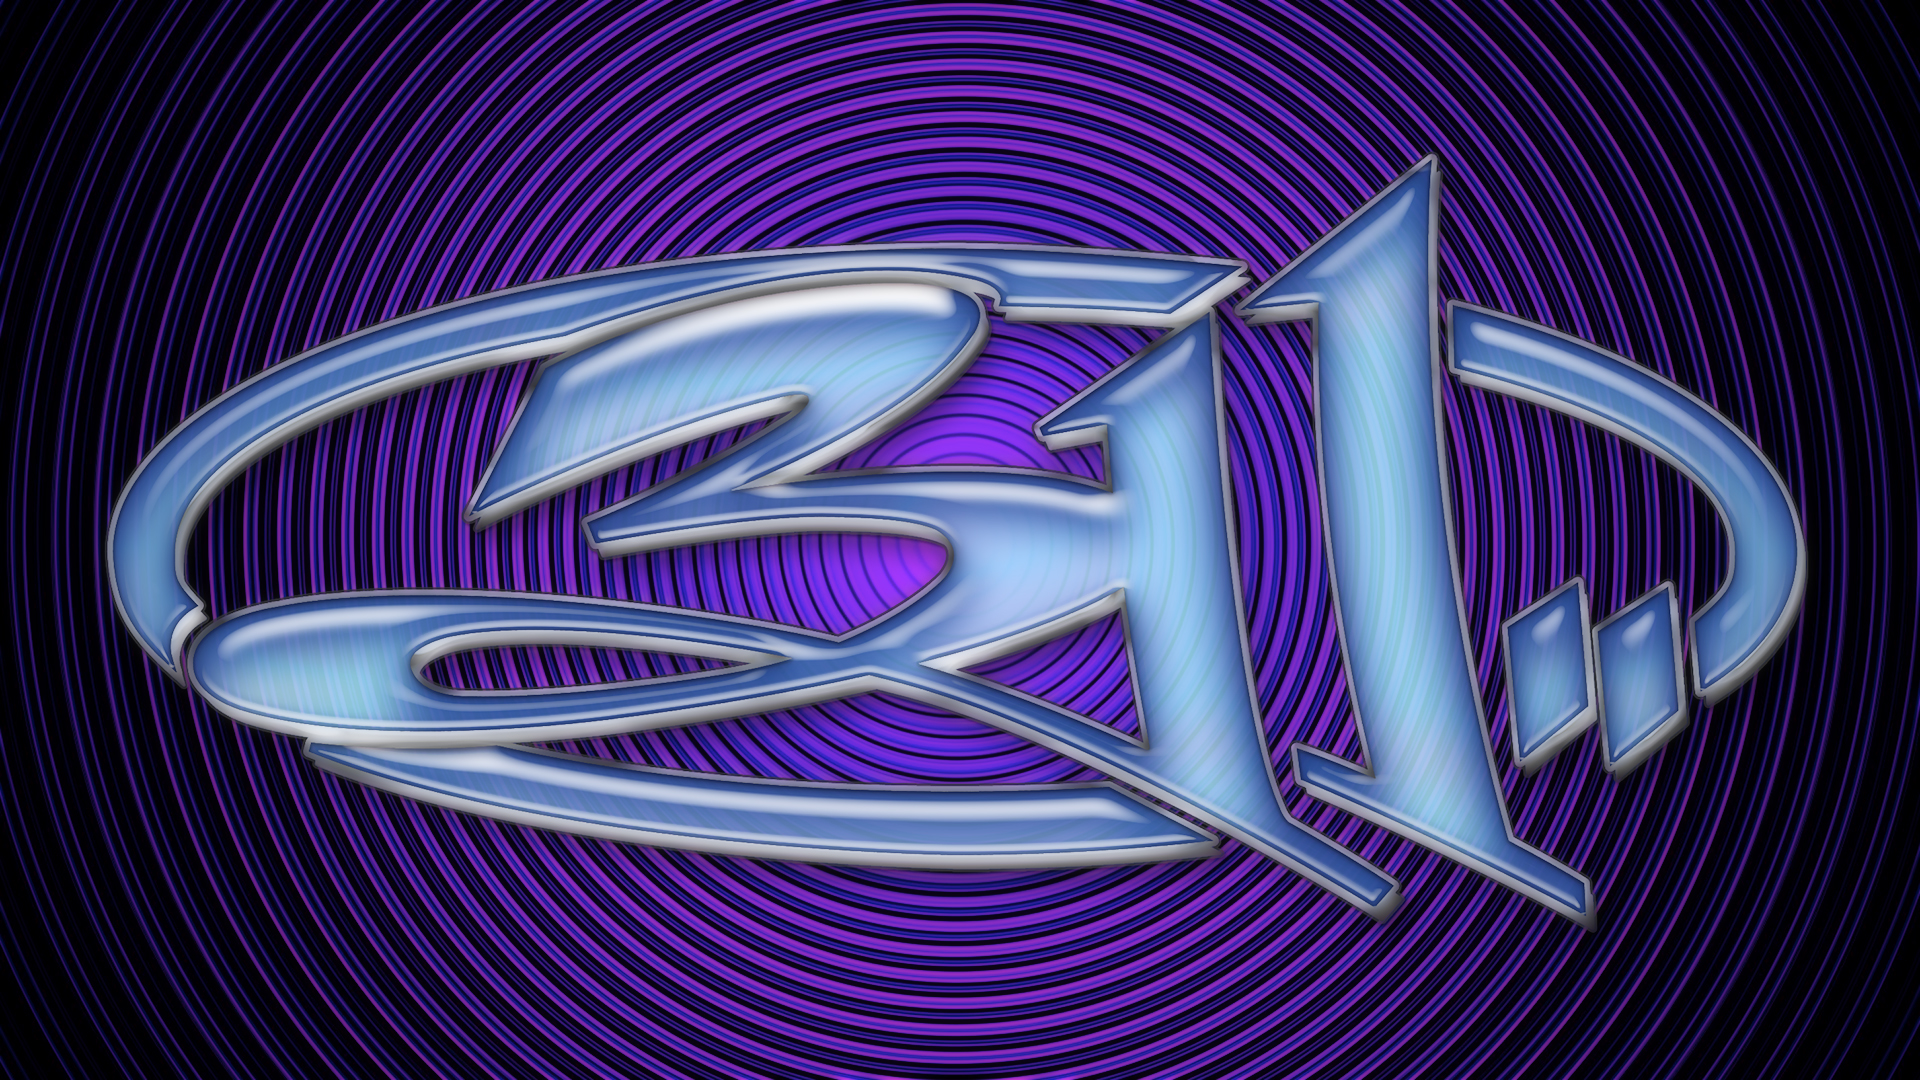 311 images 311 Hypnotic HD wallpaper and background photos